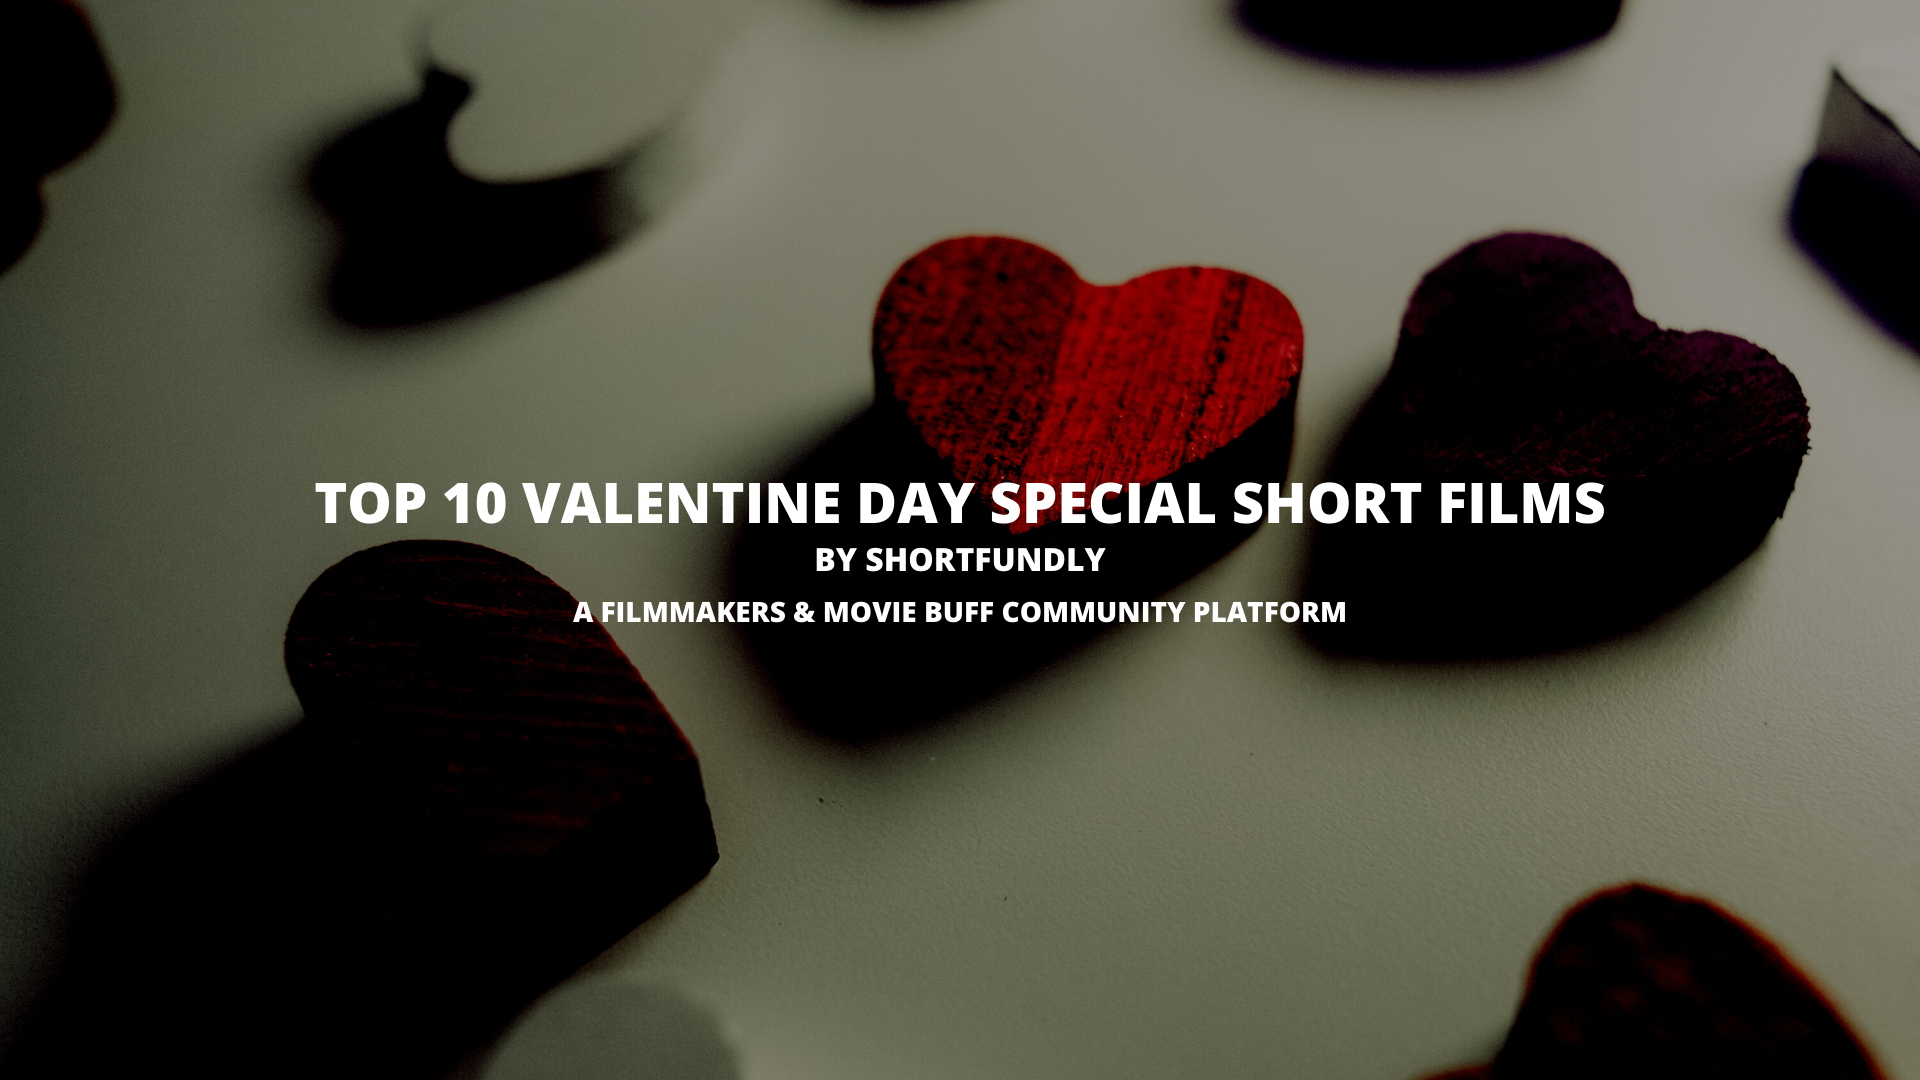 Top 10 valentine day special short film